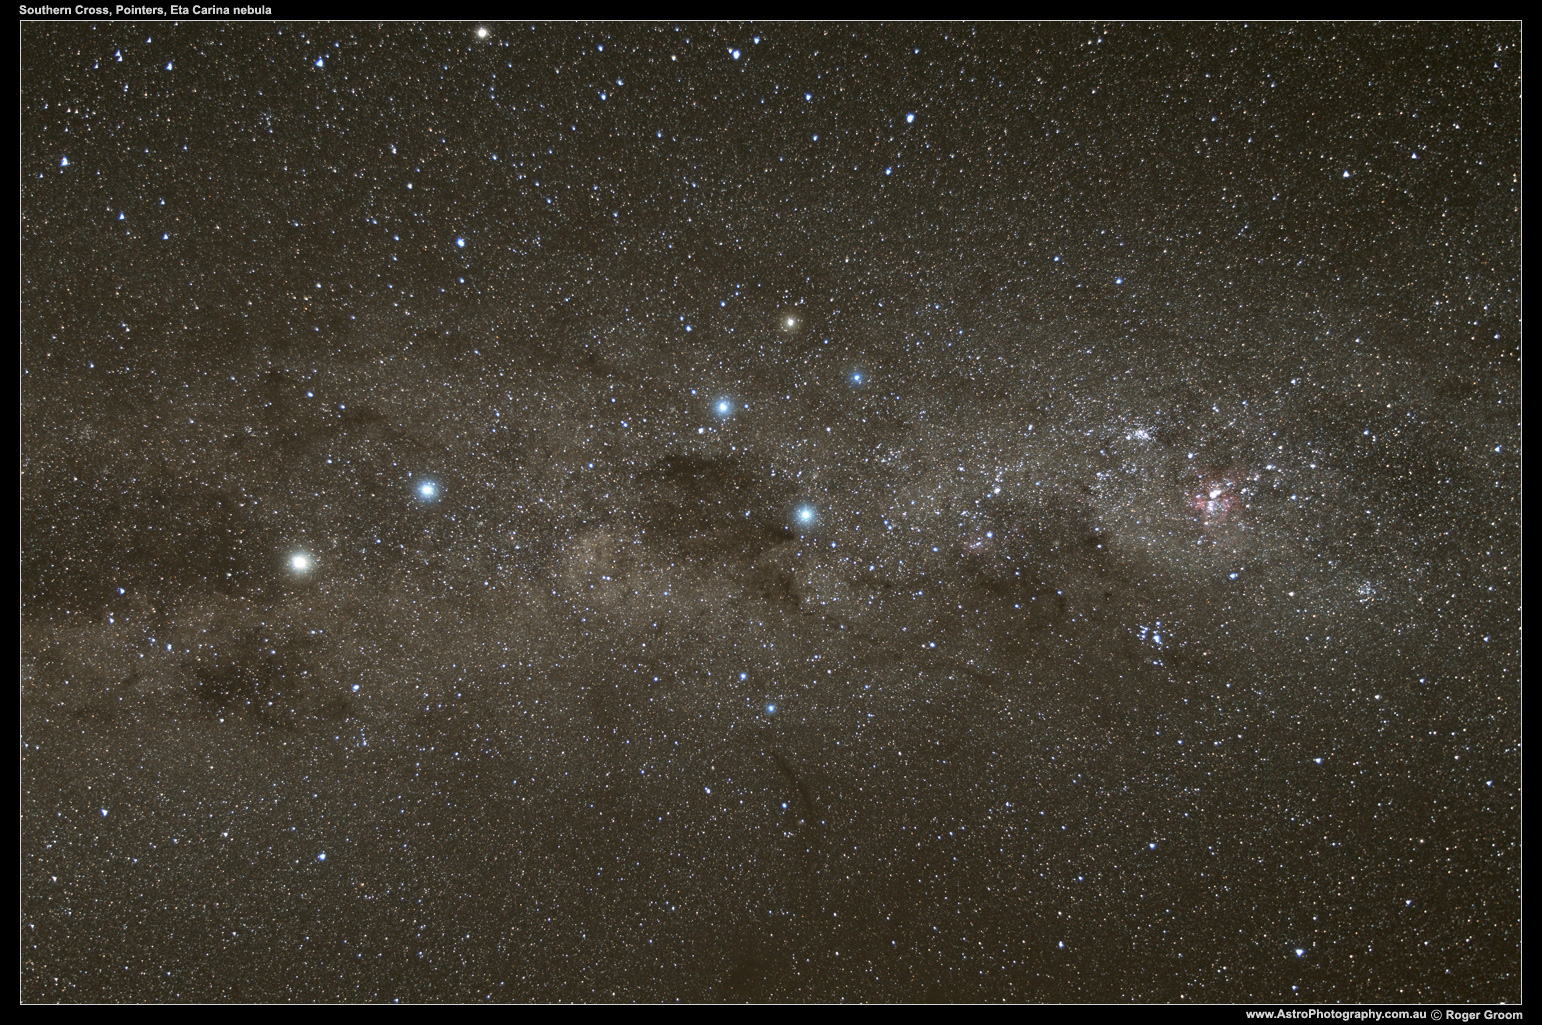 The Pointers, Southern Cross and Eta Carina Nebula